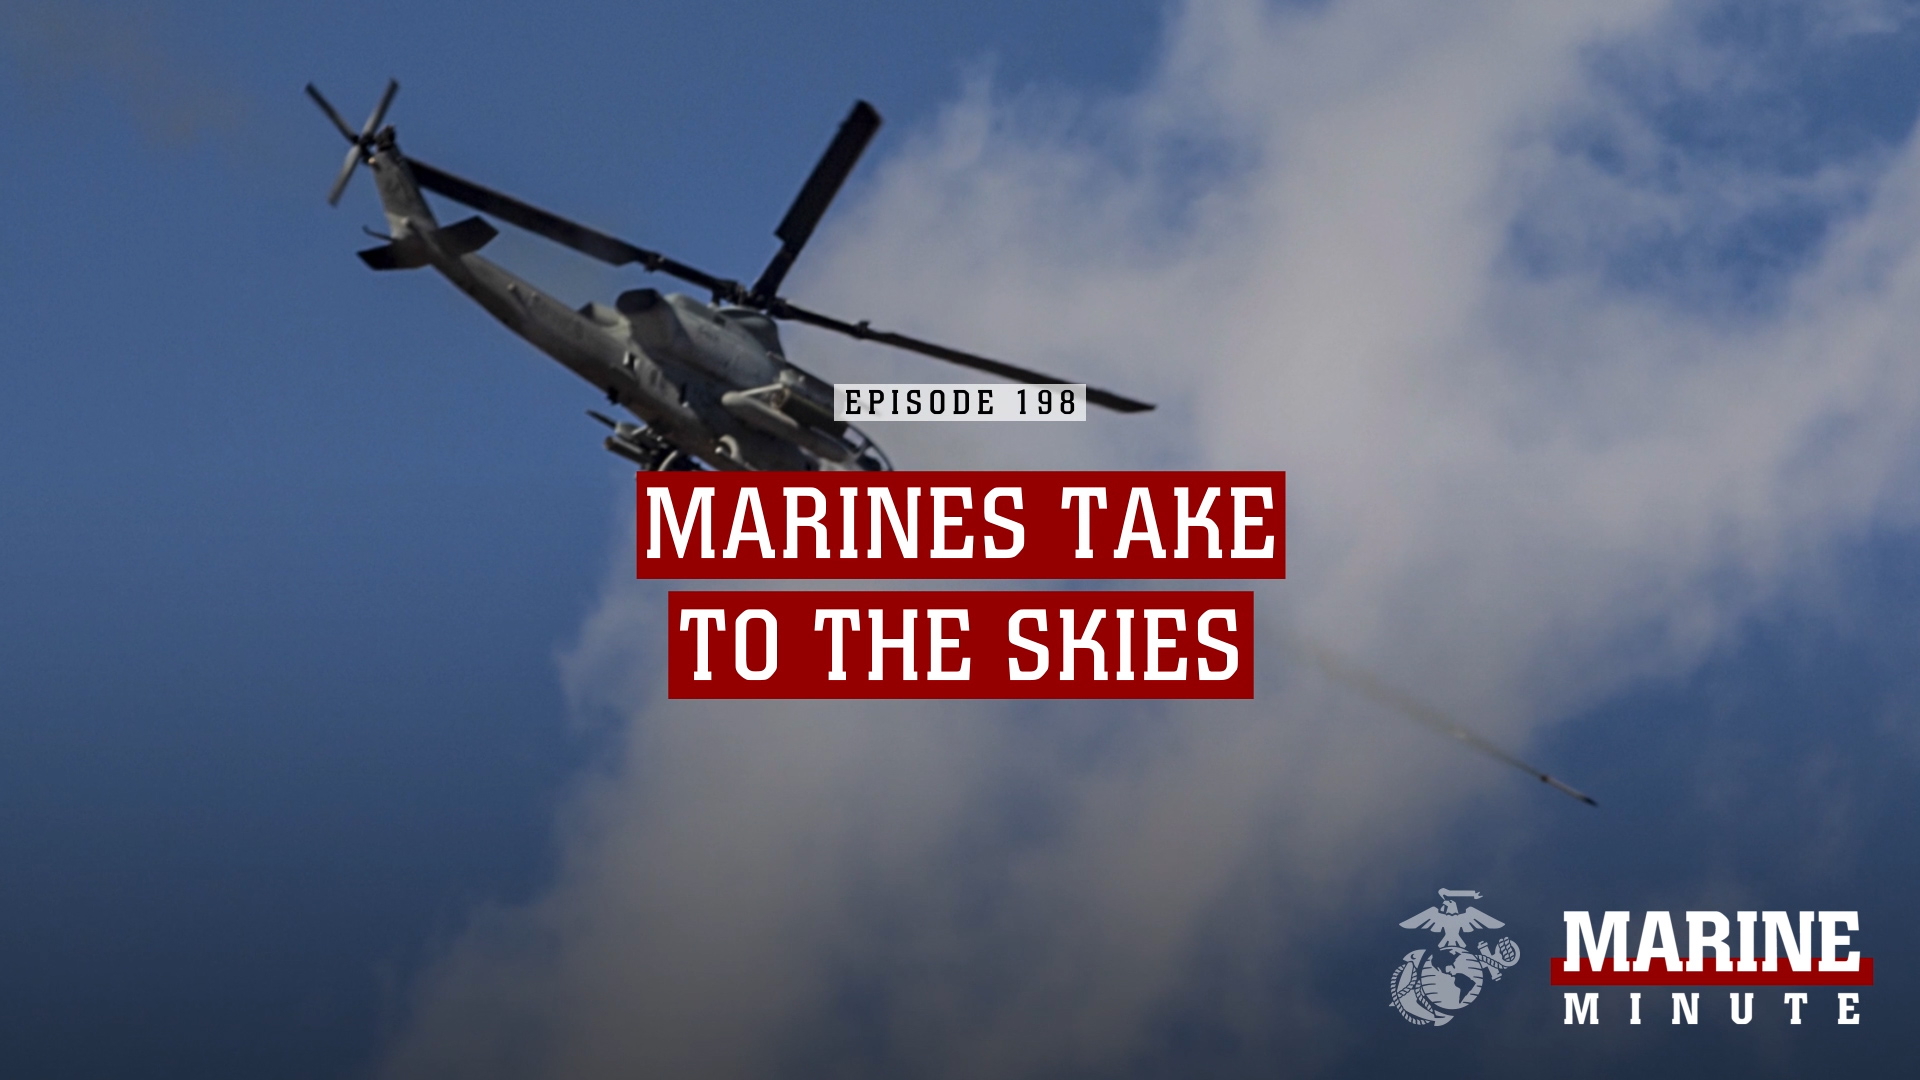 Marinesmil The Official Website Of The United States Marine Corps